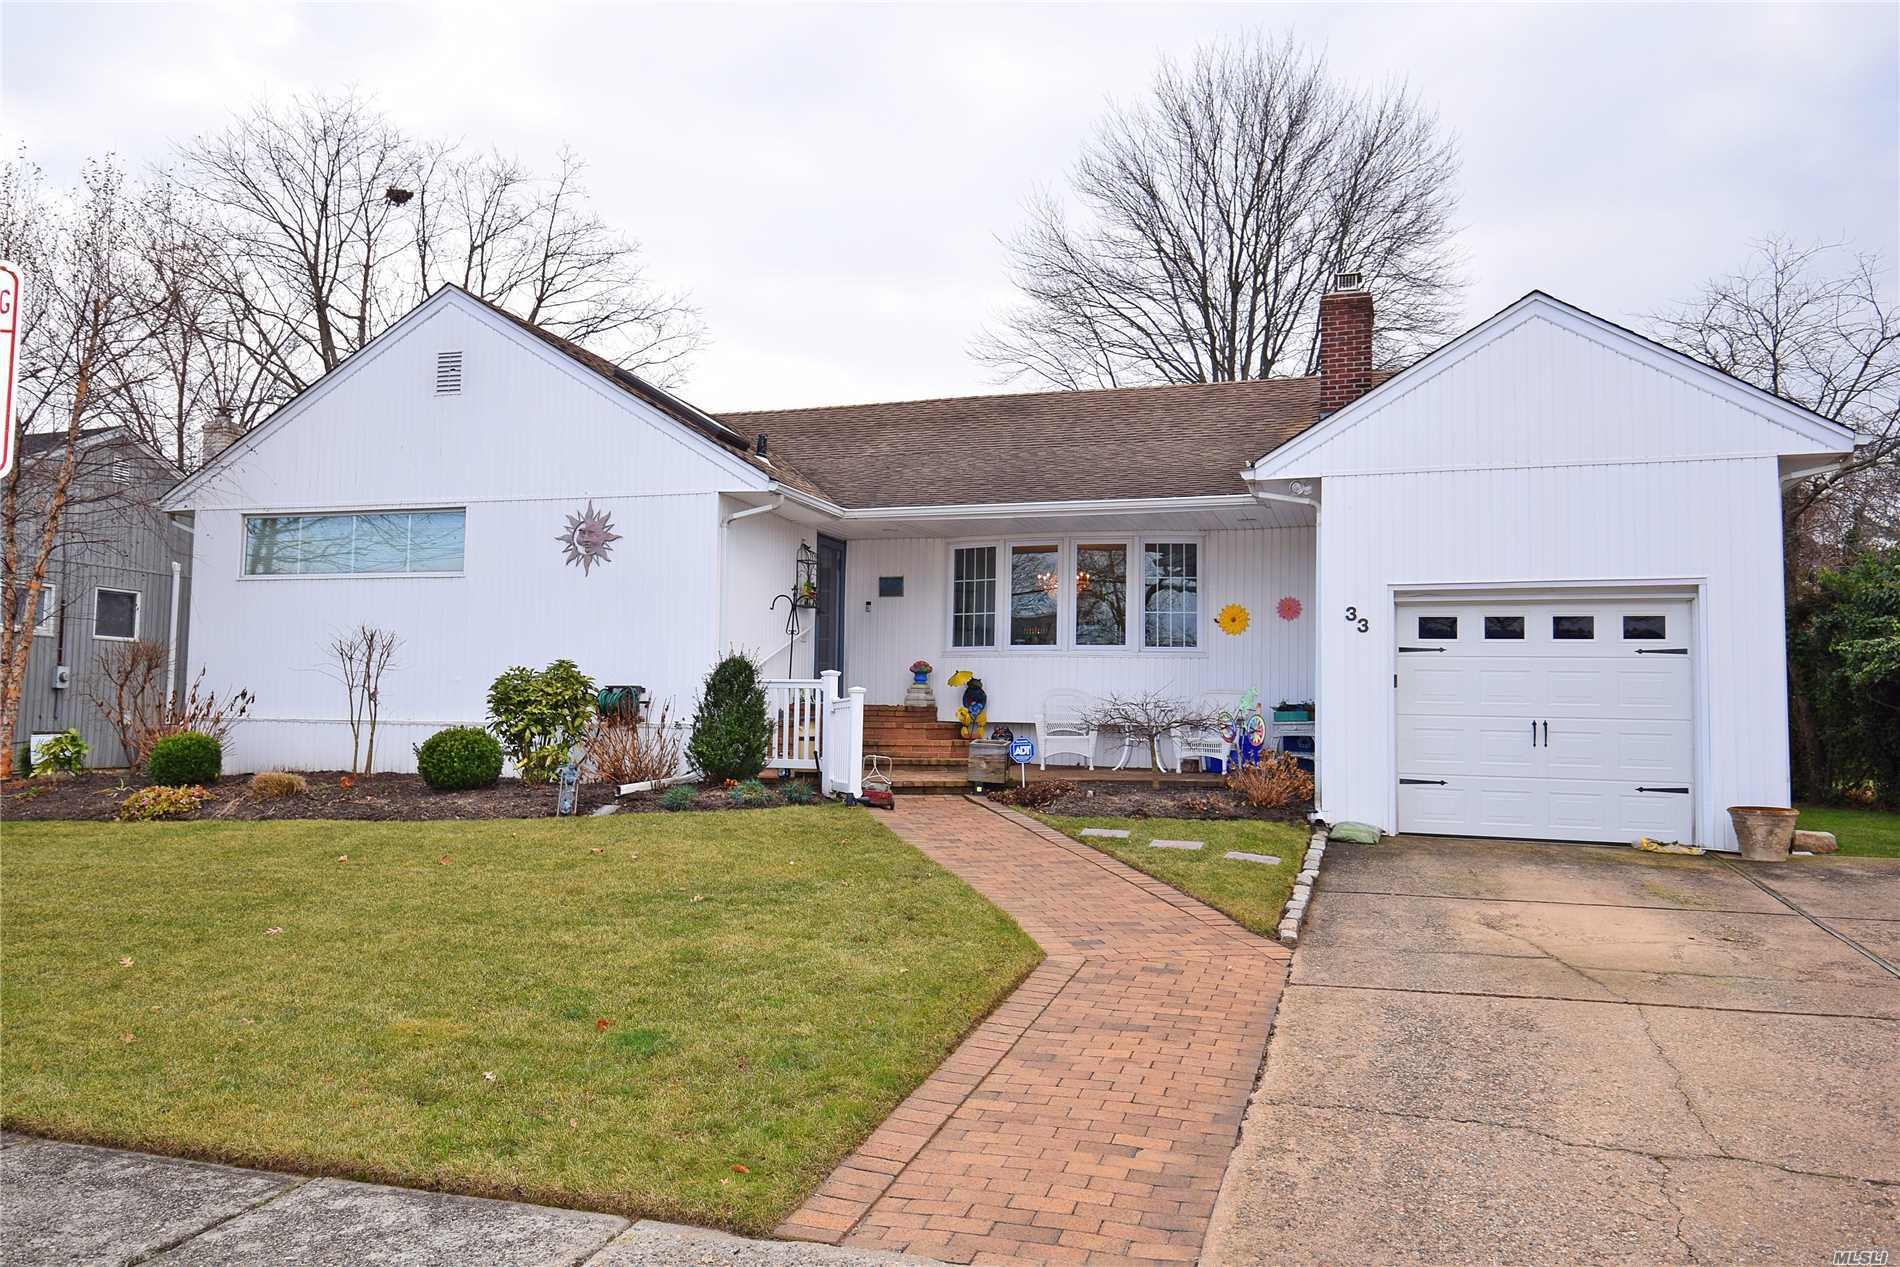 Beautiful Exp Ranch On A Quiet Street In Lynbrook.( Waverly Elementay School). Up Dated Kitchen With New Appliances, Granite Counter Top. Large Den Ideal For Entertaining. Dining Rm With Fpl, Living Rm .3 New Baths, Master With Radian Heat, Solar System. Star Saving $3, 114.Easy Show.